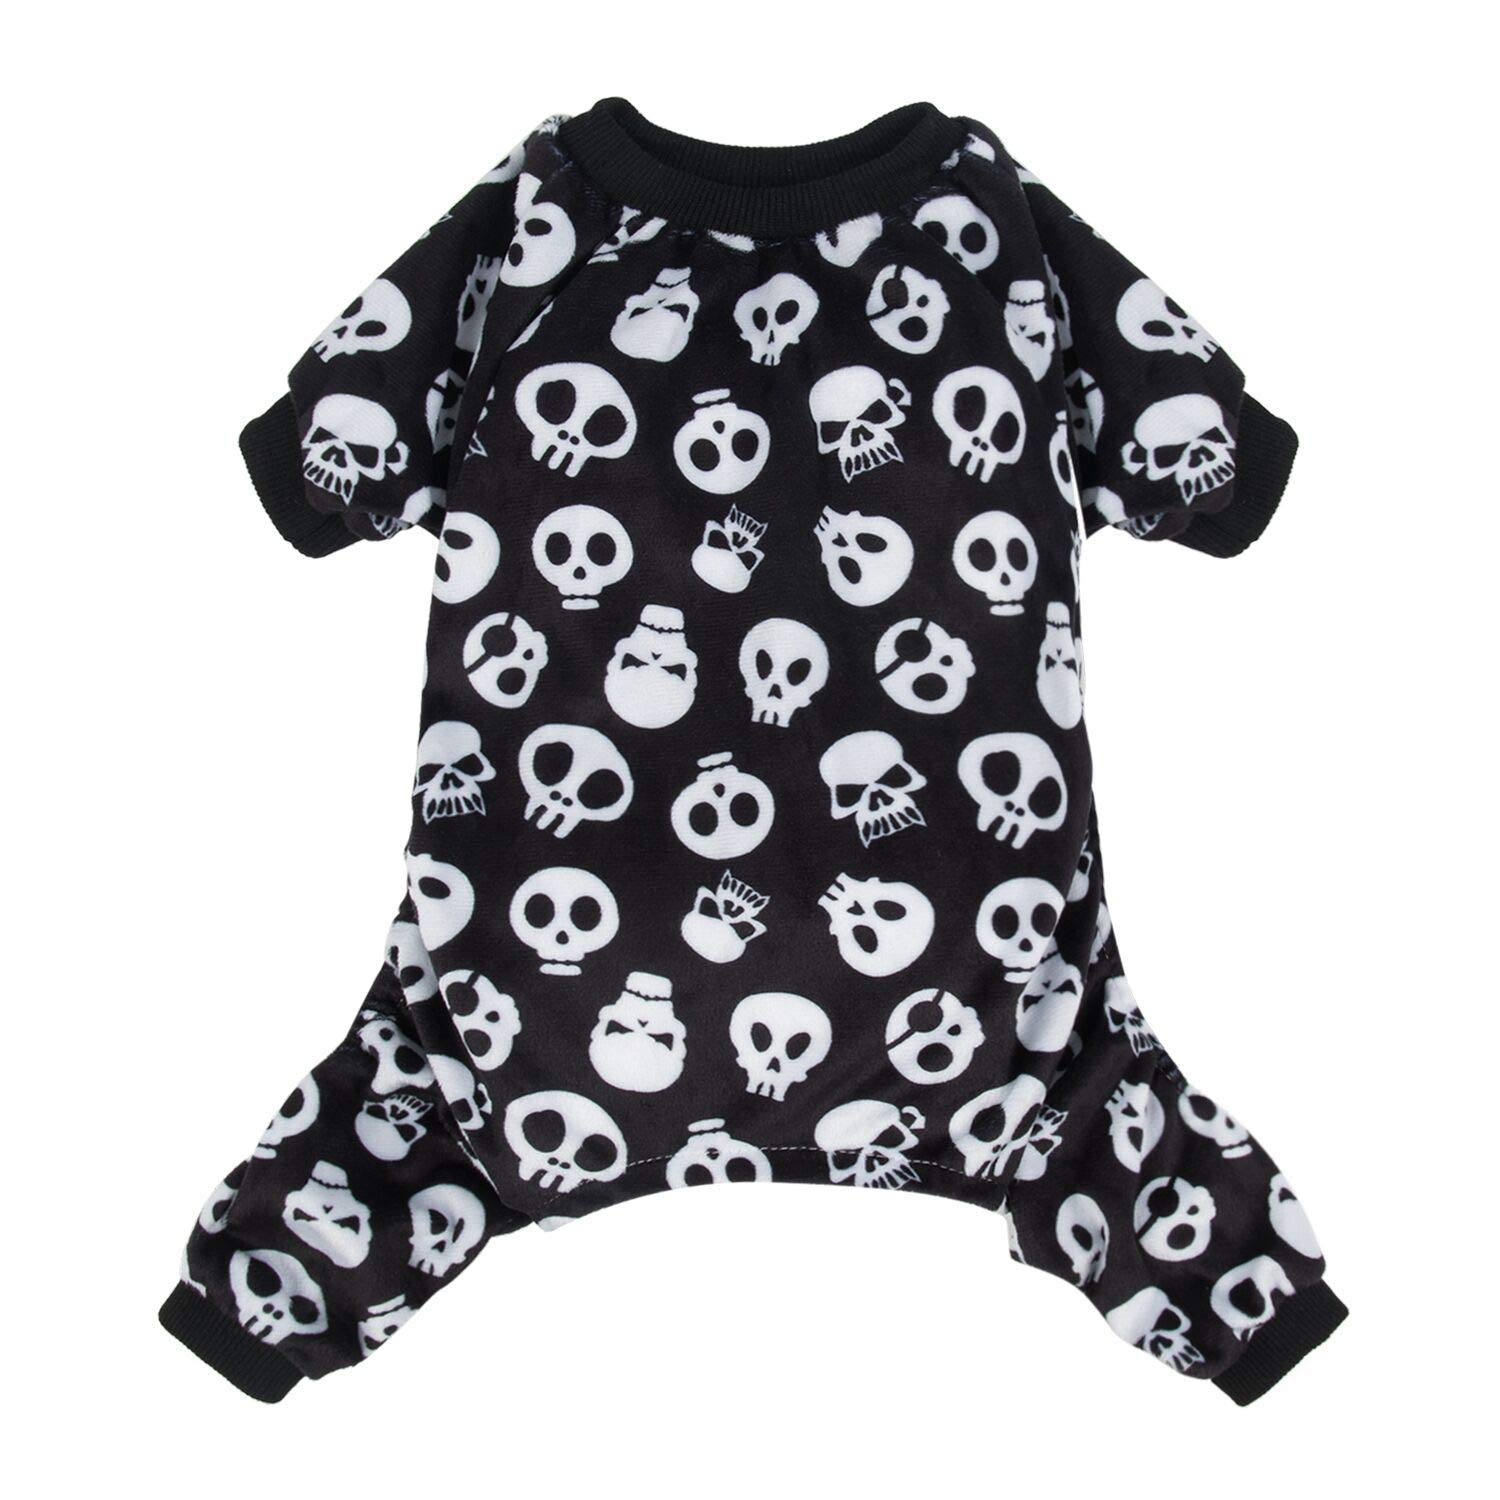 Black white skeleton XS (Chest Girth12.5'' Back Length7.5'') Black white skeleton XS (Chest Girth12.5'' Back Length7.5'') CuteBone Dog Pajamas Skeleton Dog Apparel Dog Jumpsuit Pet Clothes Pajamas P11XS